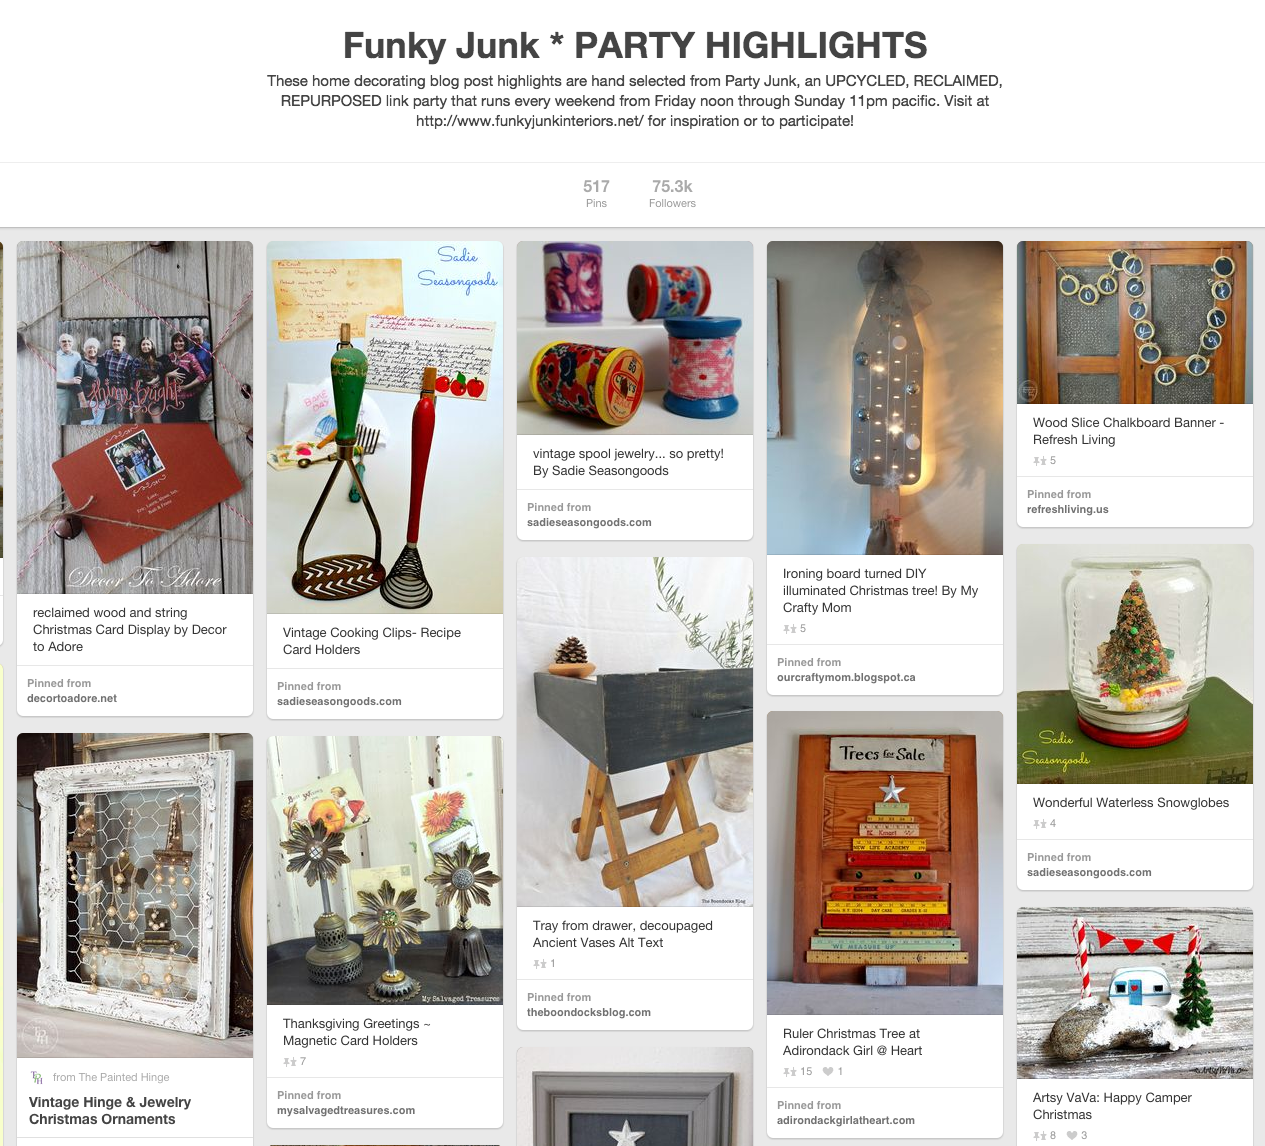 Funky Junk's Party Highlights on Pinterest.43 PM